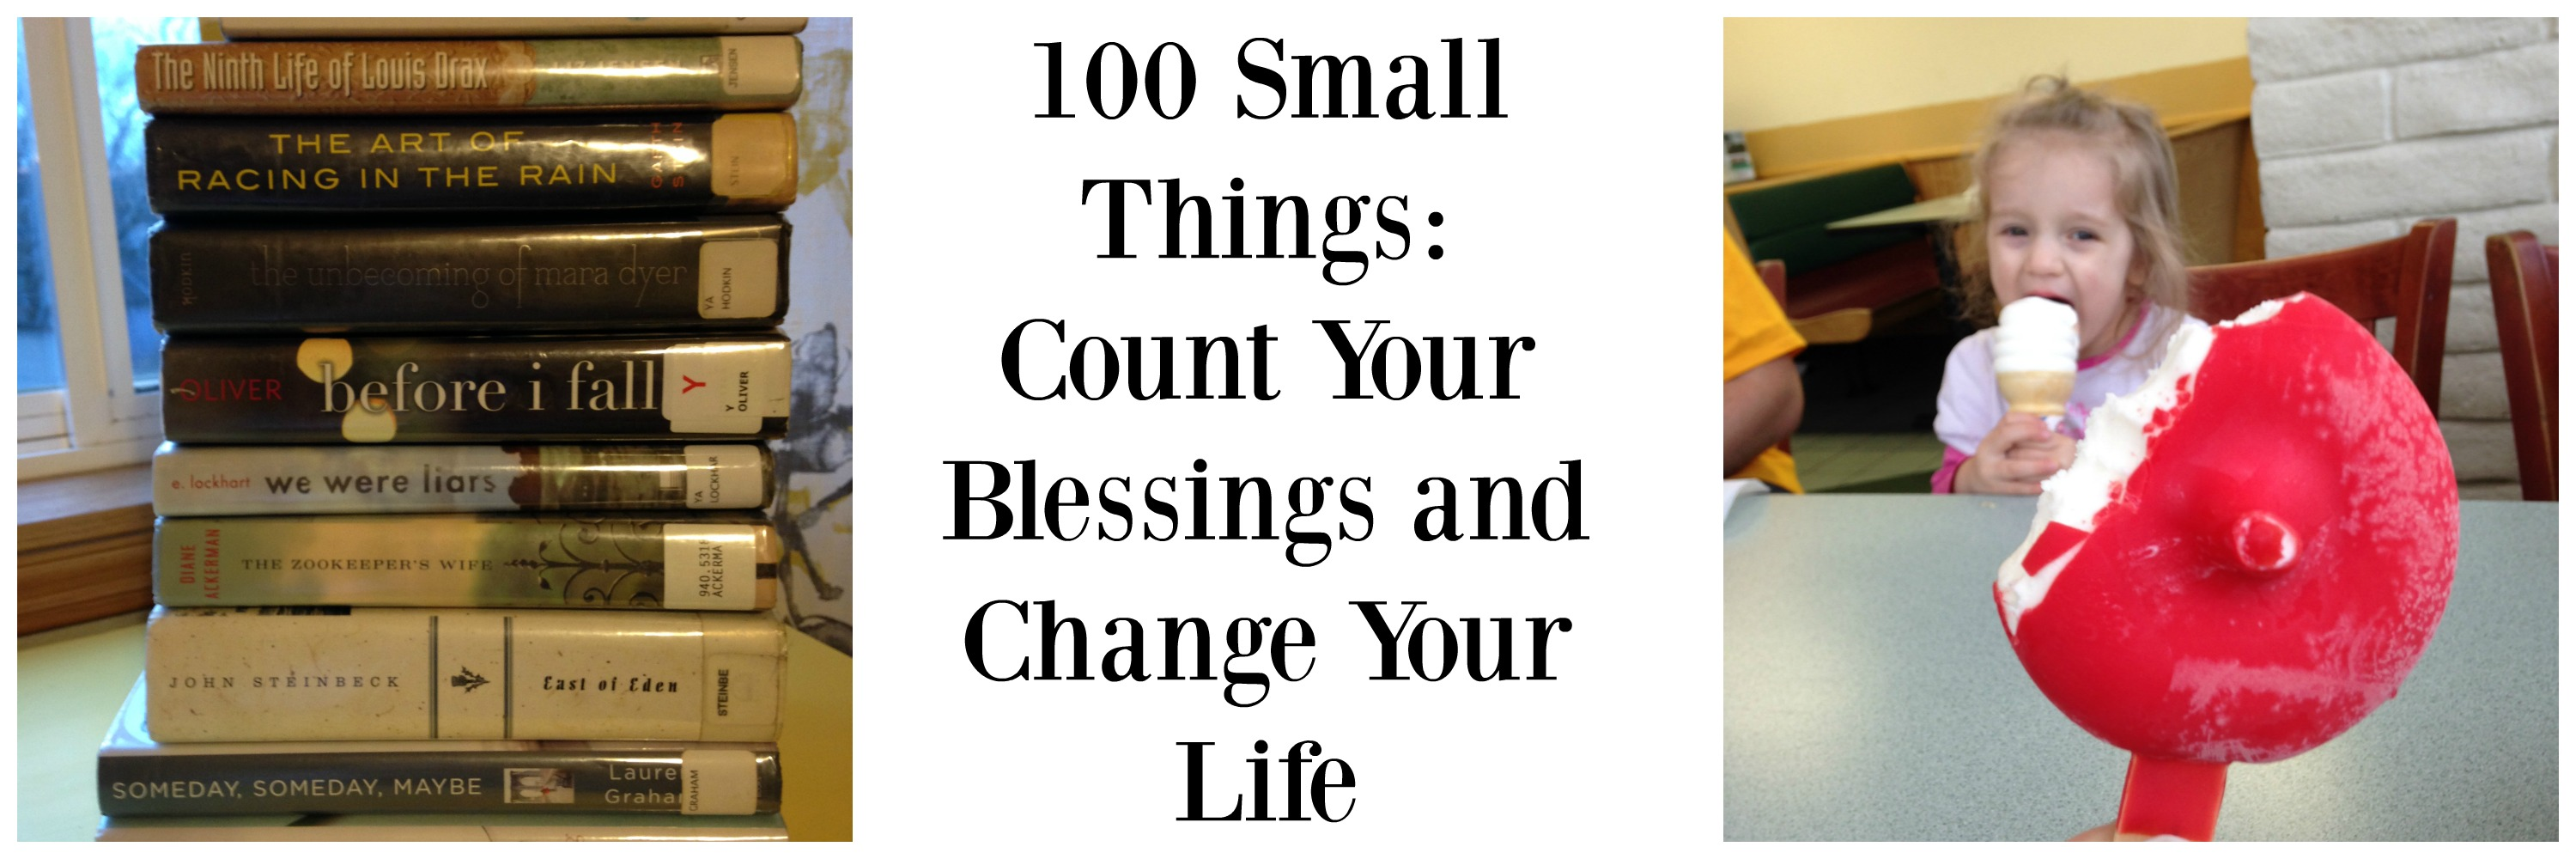 100 Small Things: Count Your Blessings and Change Your Life